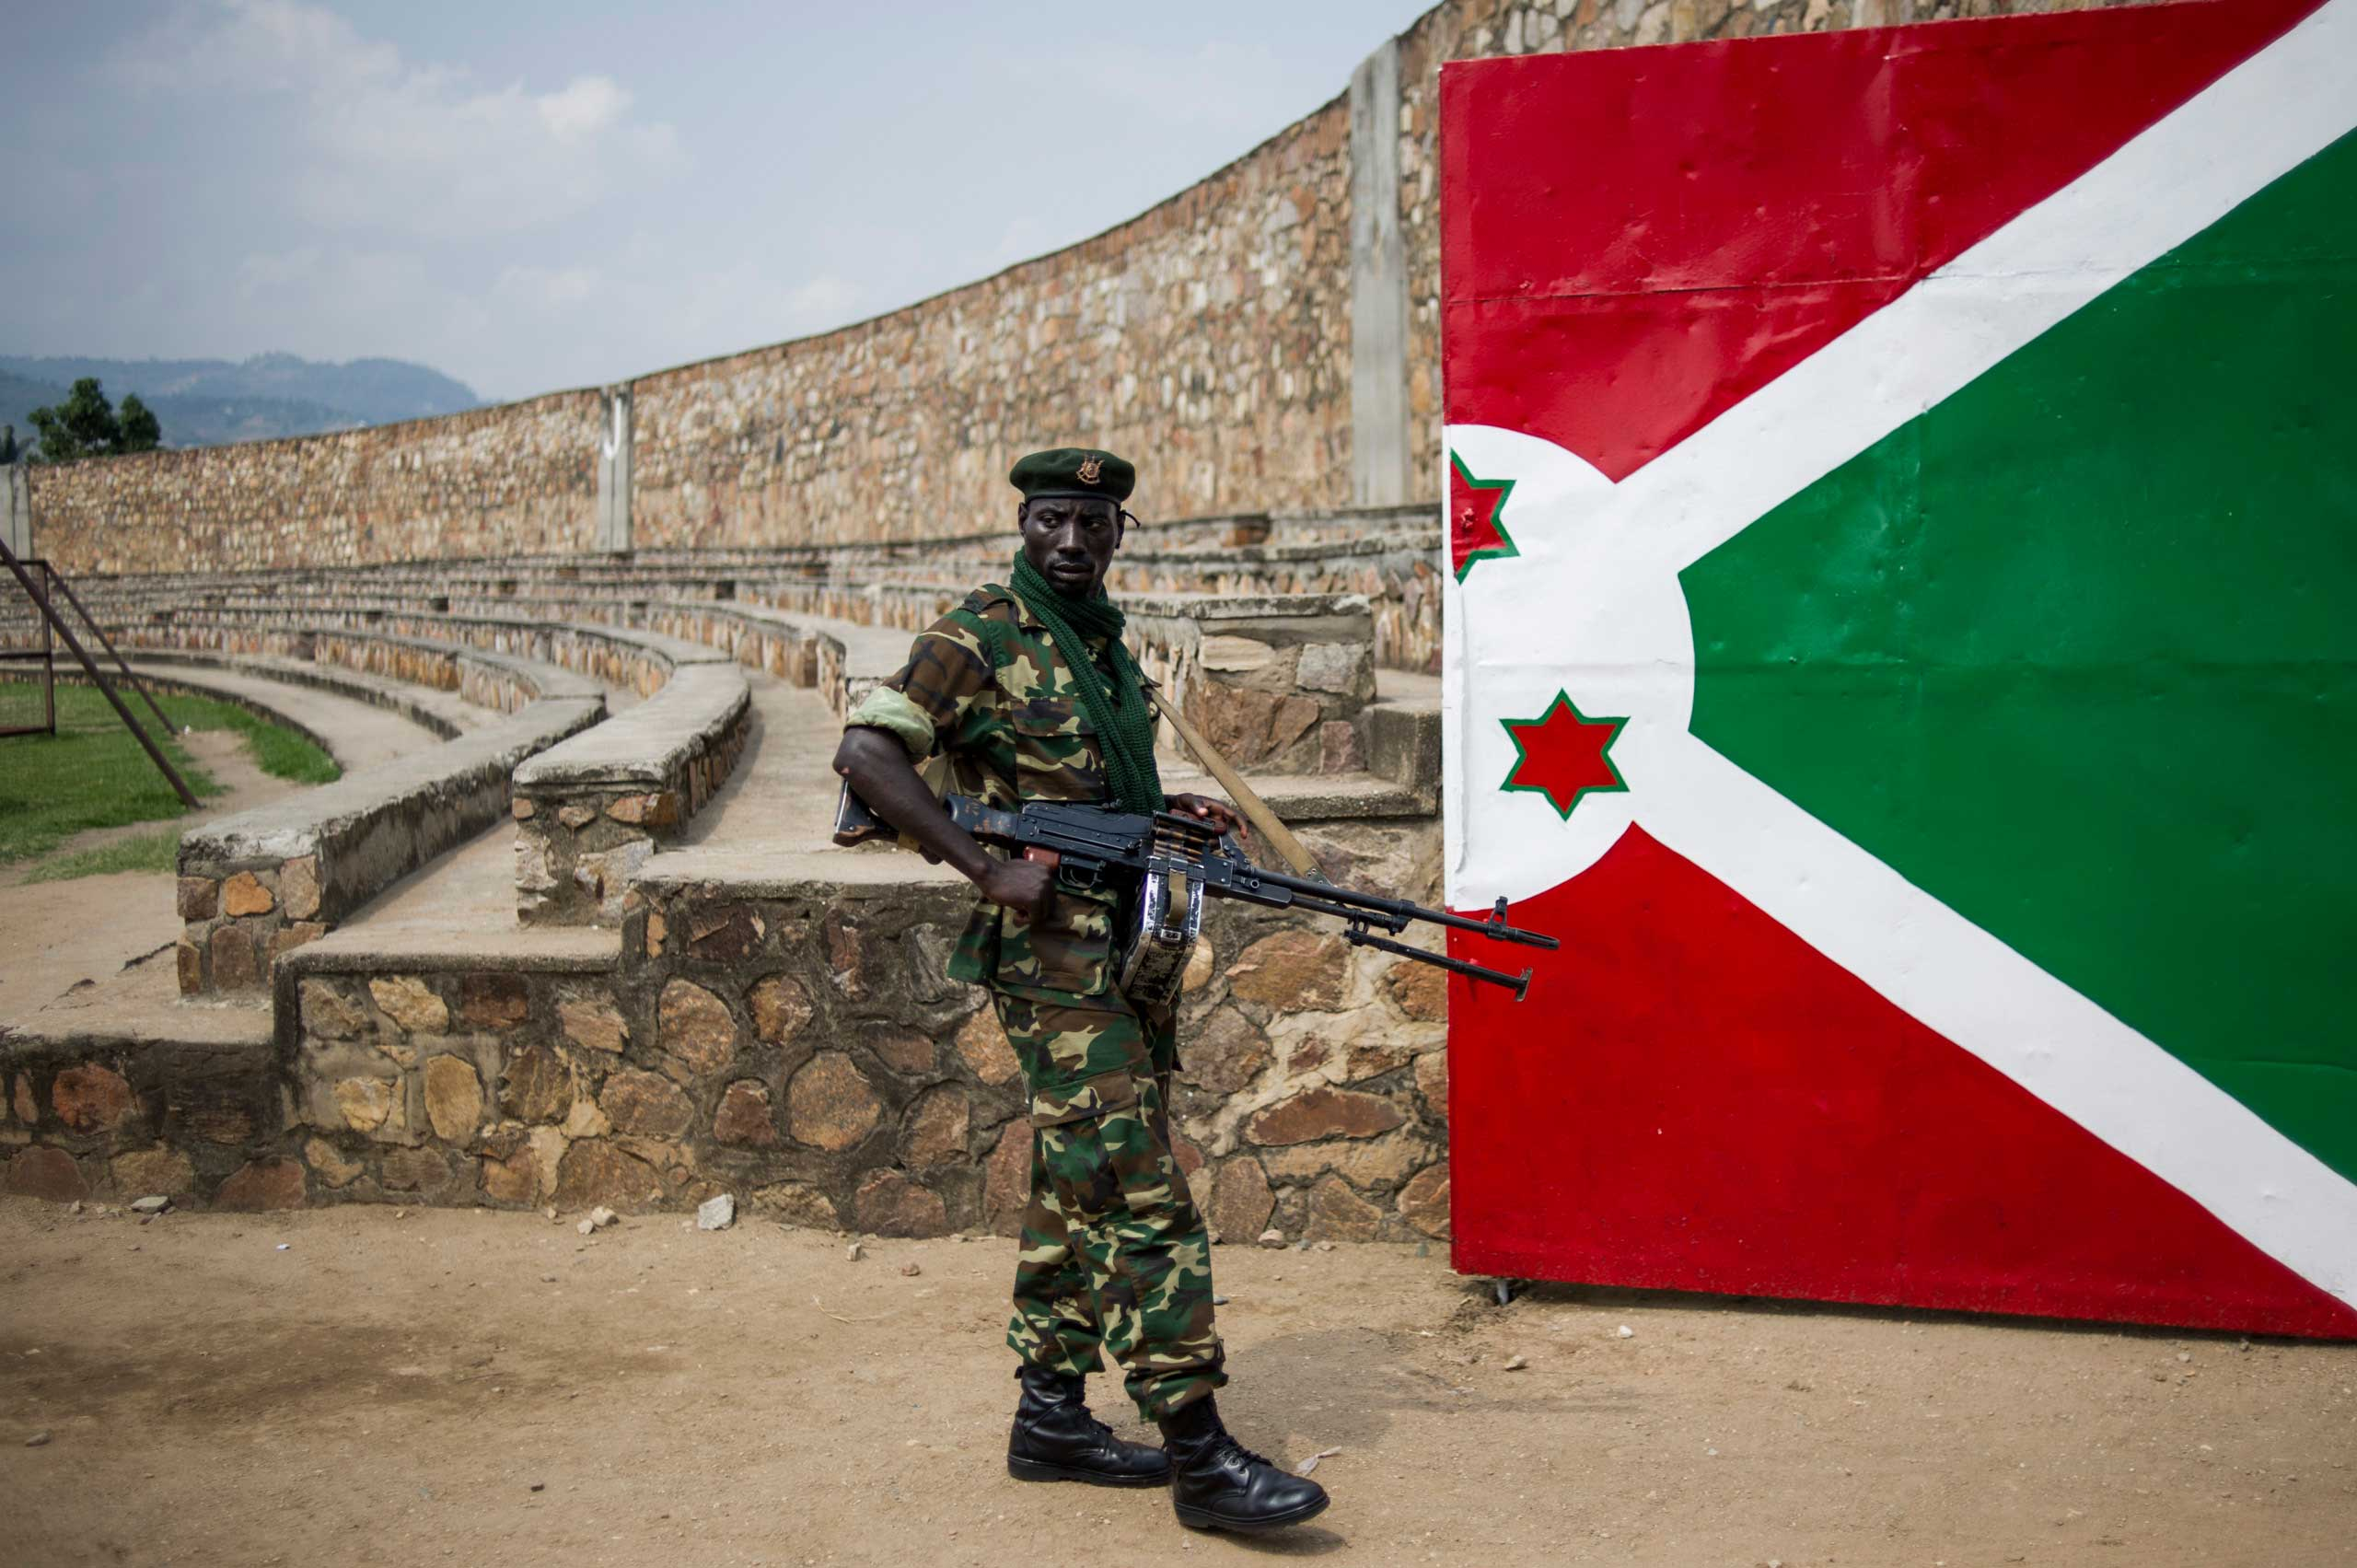 TIME LightBox: 3 Months of Political Unrest in Burundi A soldier stands next to a gate painted with the Burundian flag at the Prince Rwagasore Stadium in Bujumbura, Burundi, on June 27, 2015, during rehearsals for Independence Day celebrations on July 1.